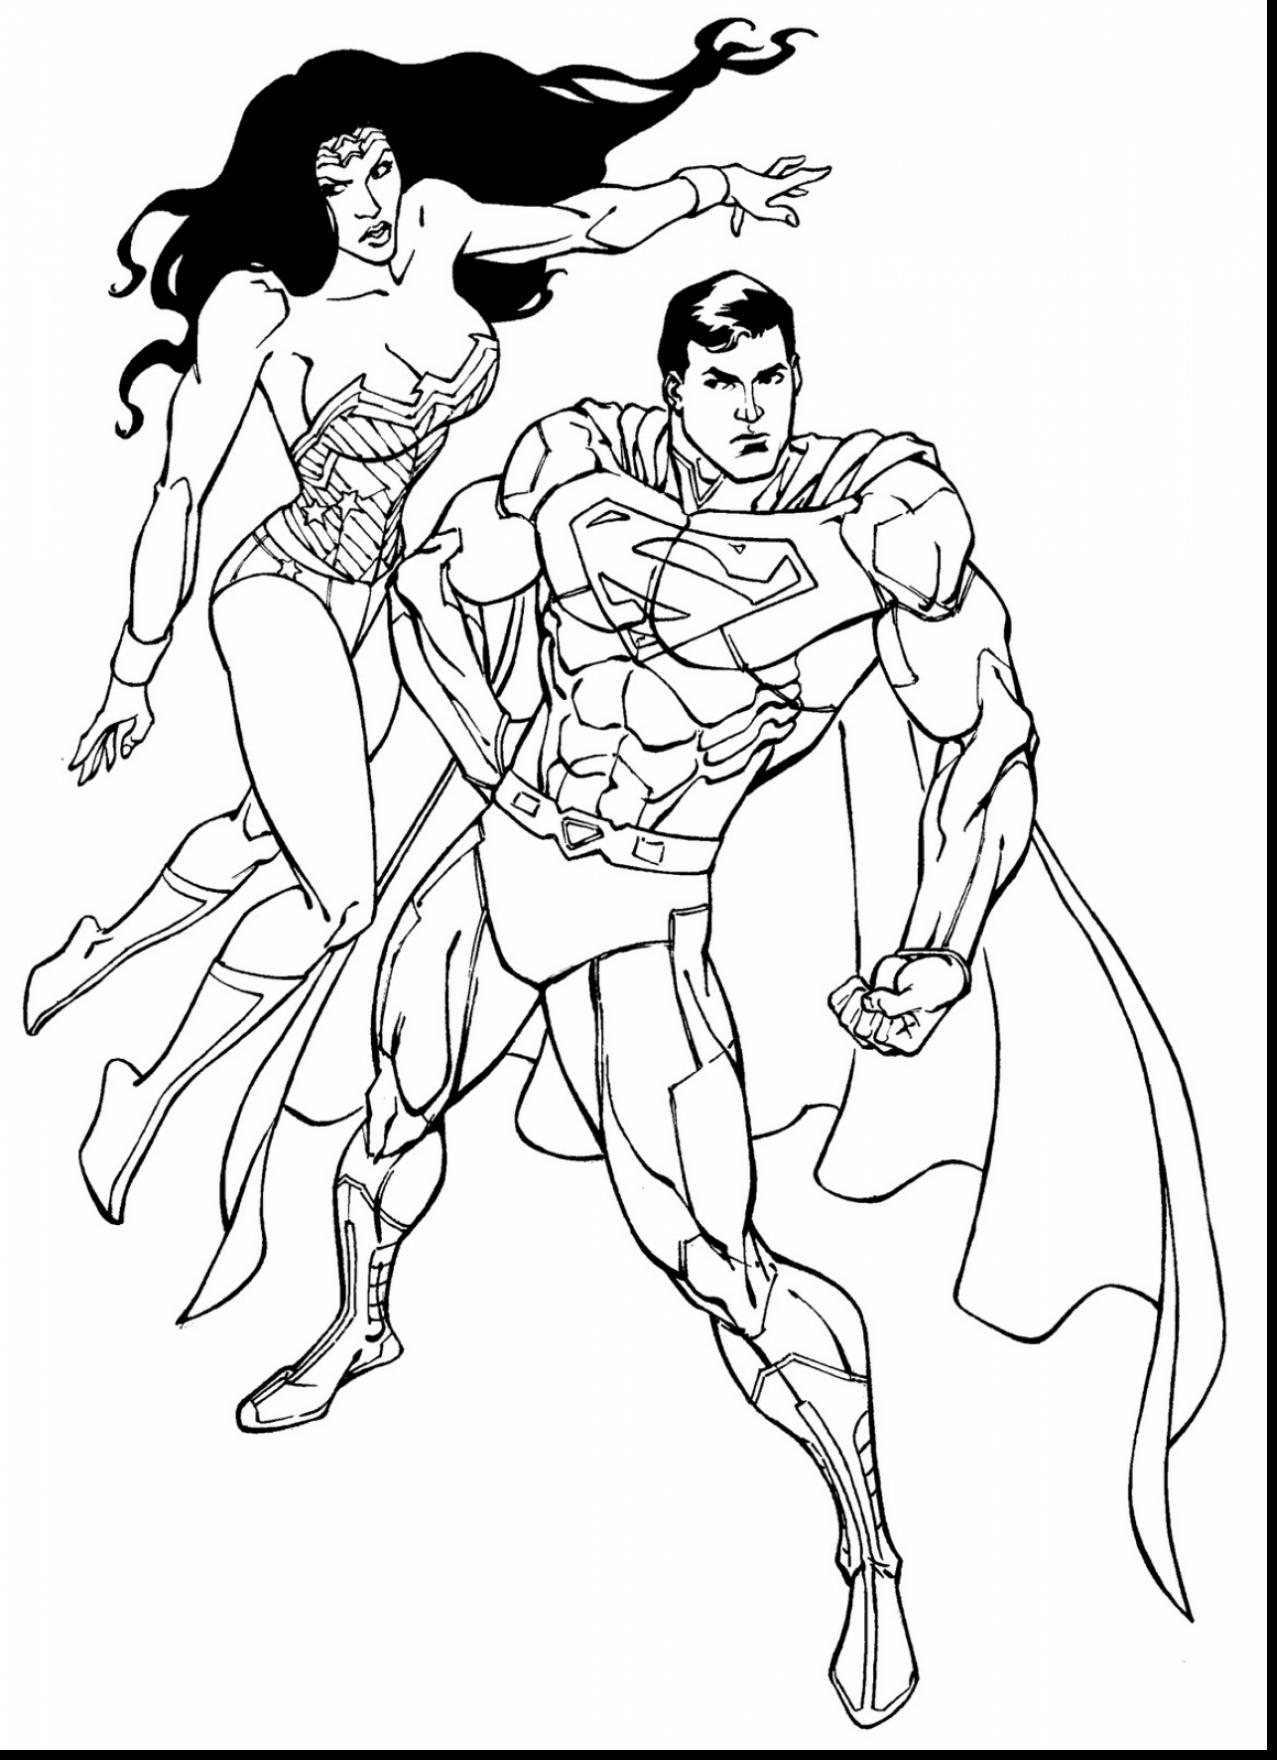 photograph regarding Batman Vs Superman Coloring Pages Printable titled Batman Superman Coloring Internet pages at  Absolutely free for